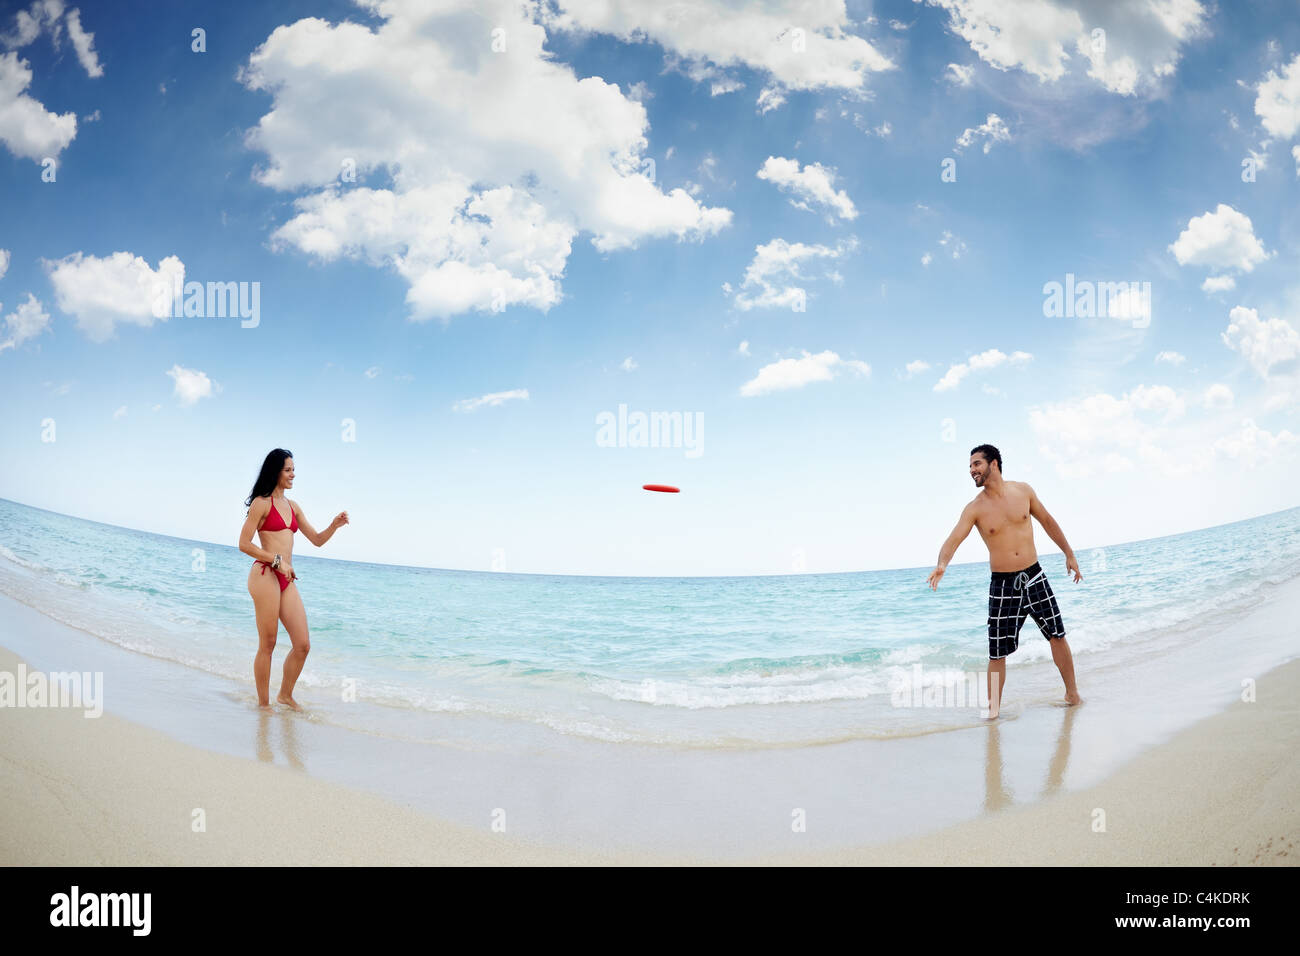 boyfriend and girlfriend playing with frisby on tropical beach. Horizontal shape, full length, fisheye - Stock Image